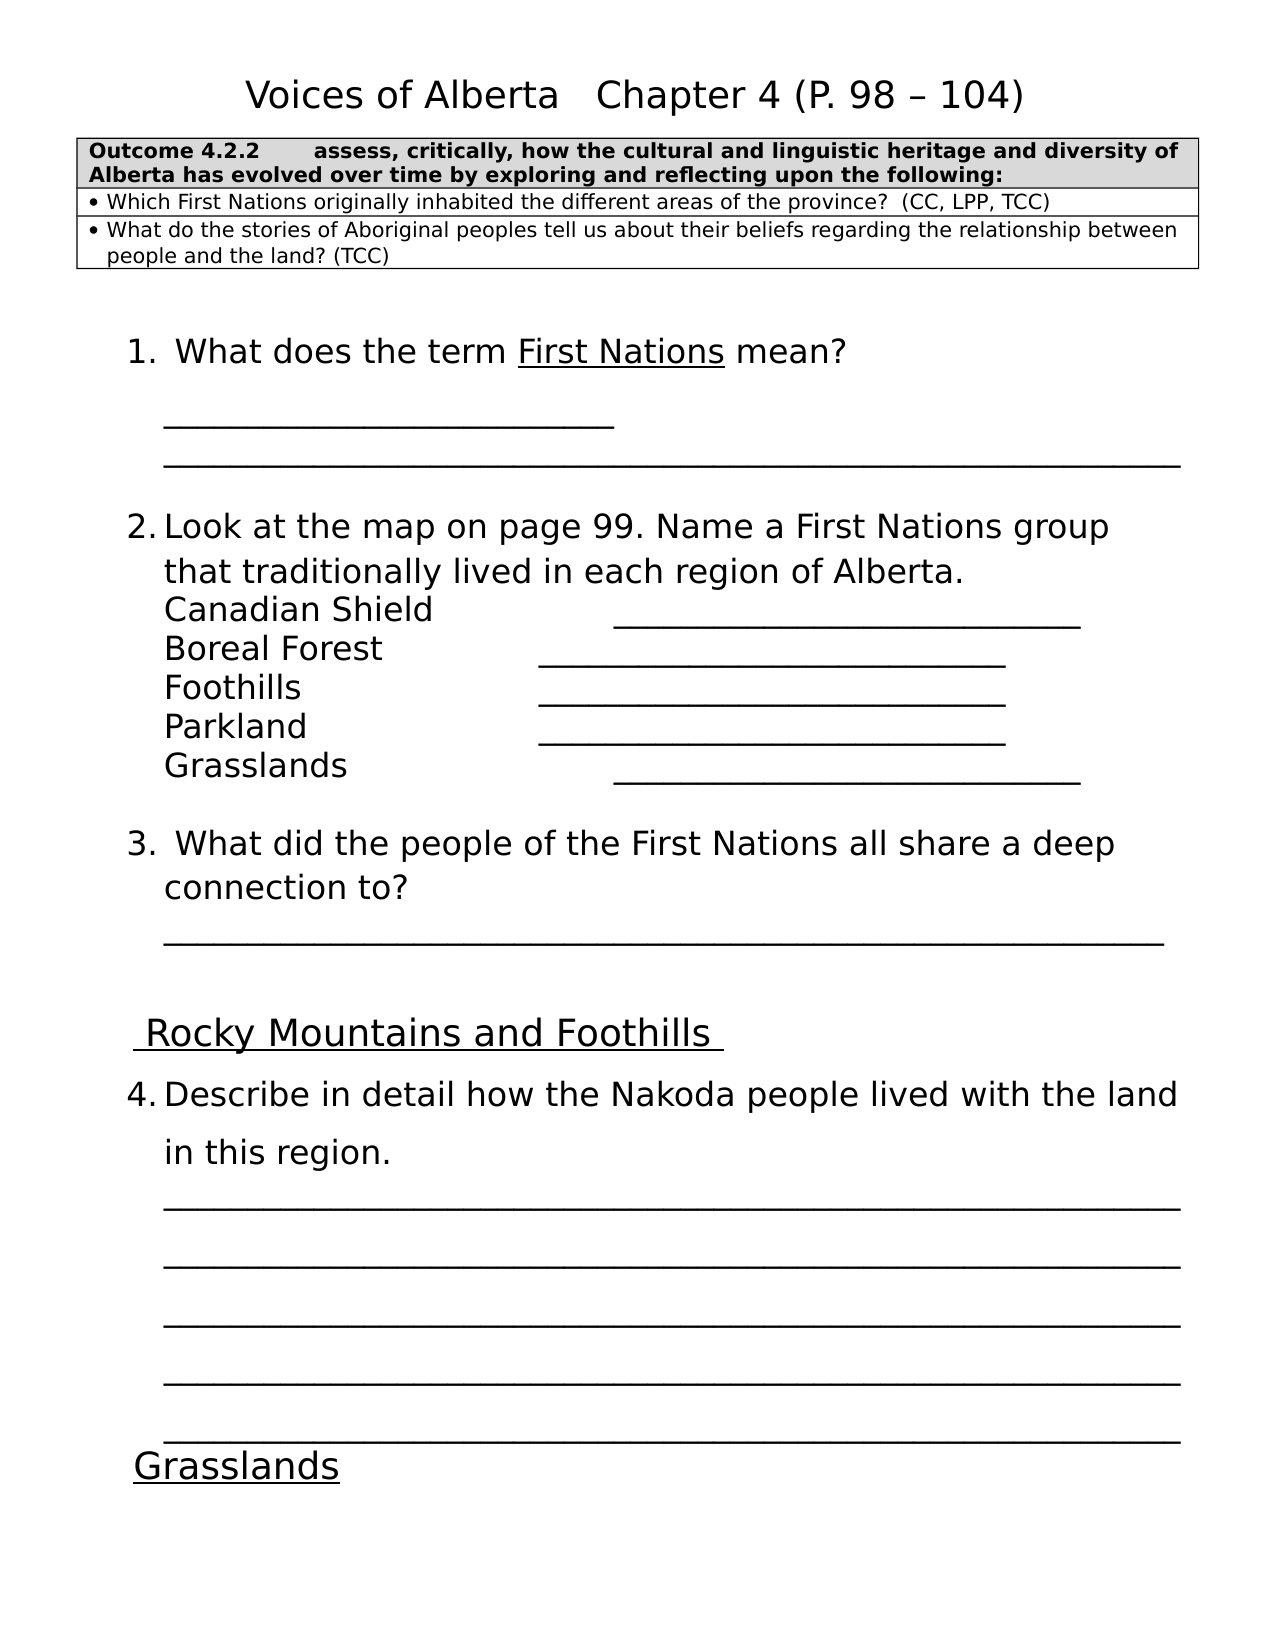 Voices of Alberta Chapter 4 Resource Preview